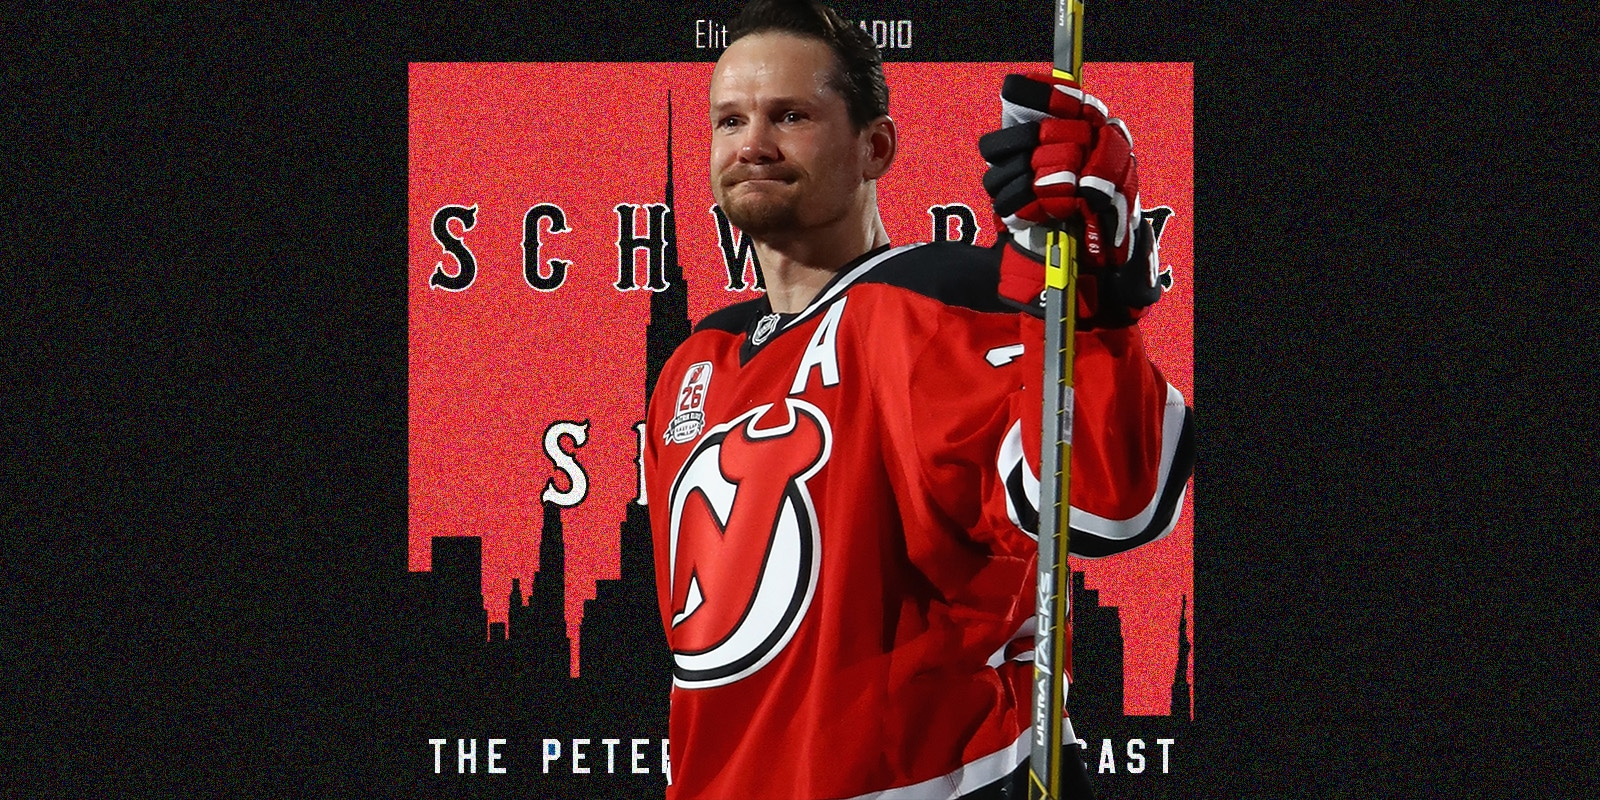 Schwartz-on-sports-patrik-elias